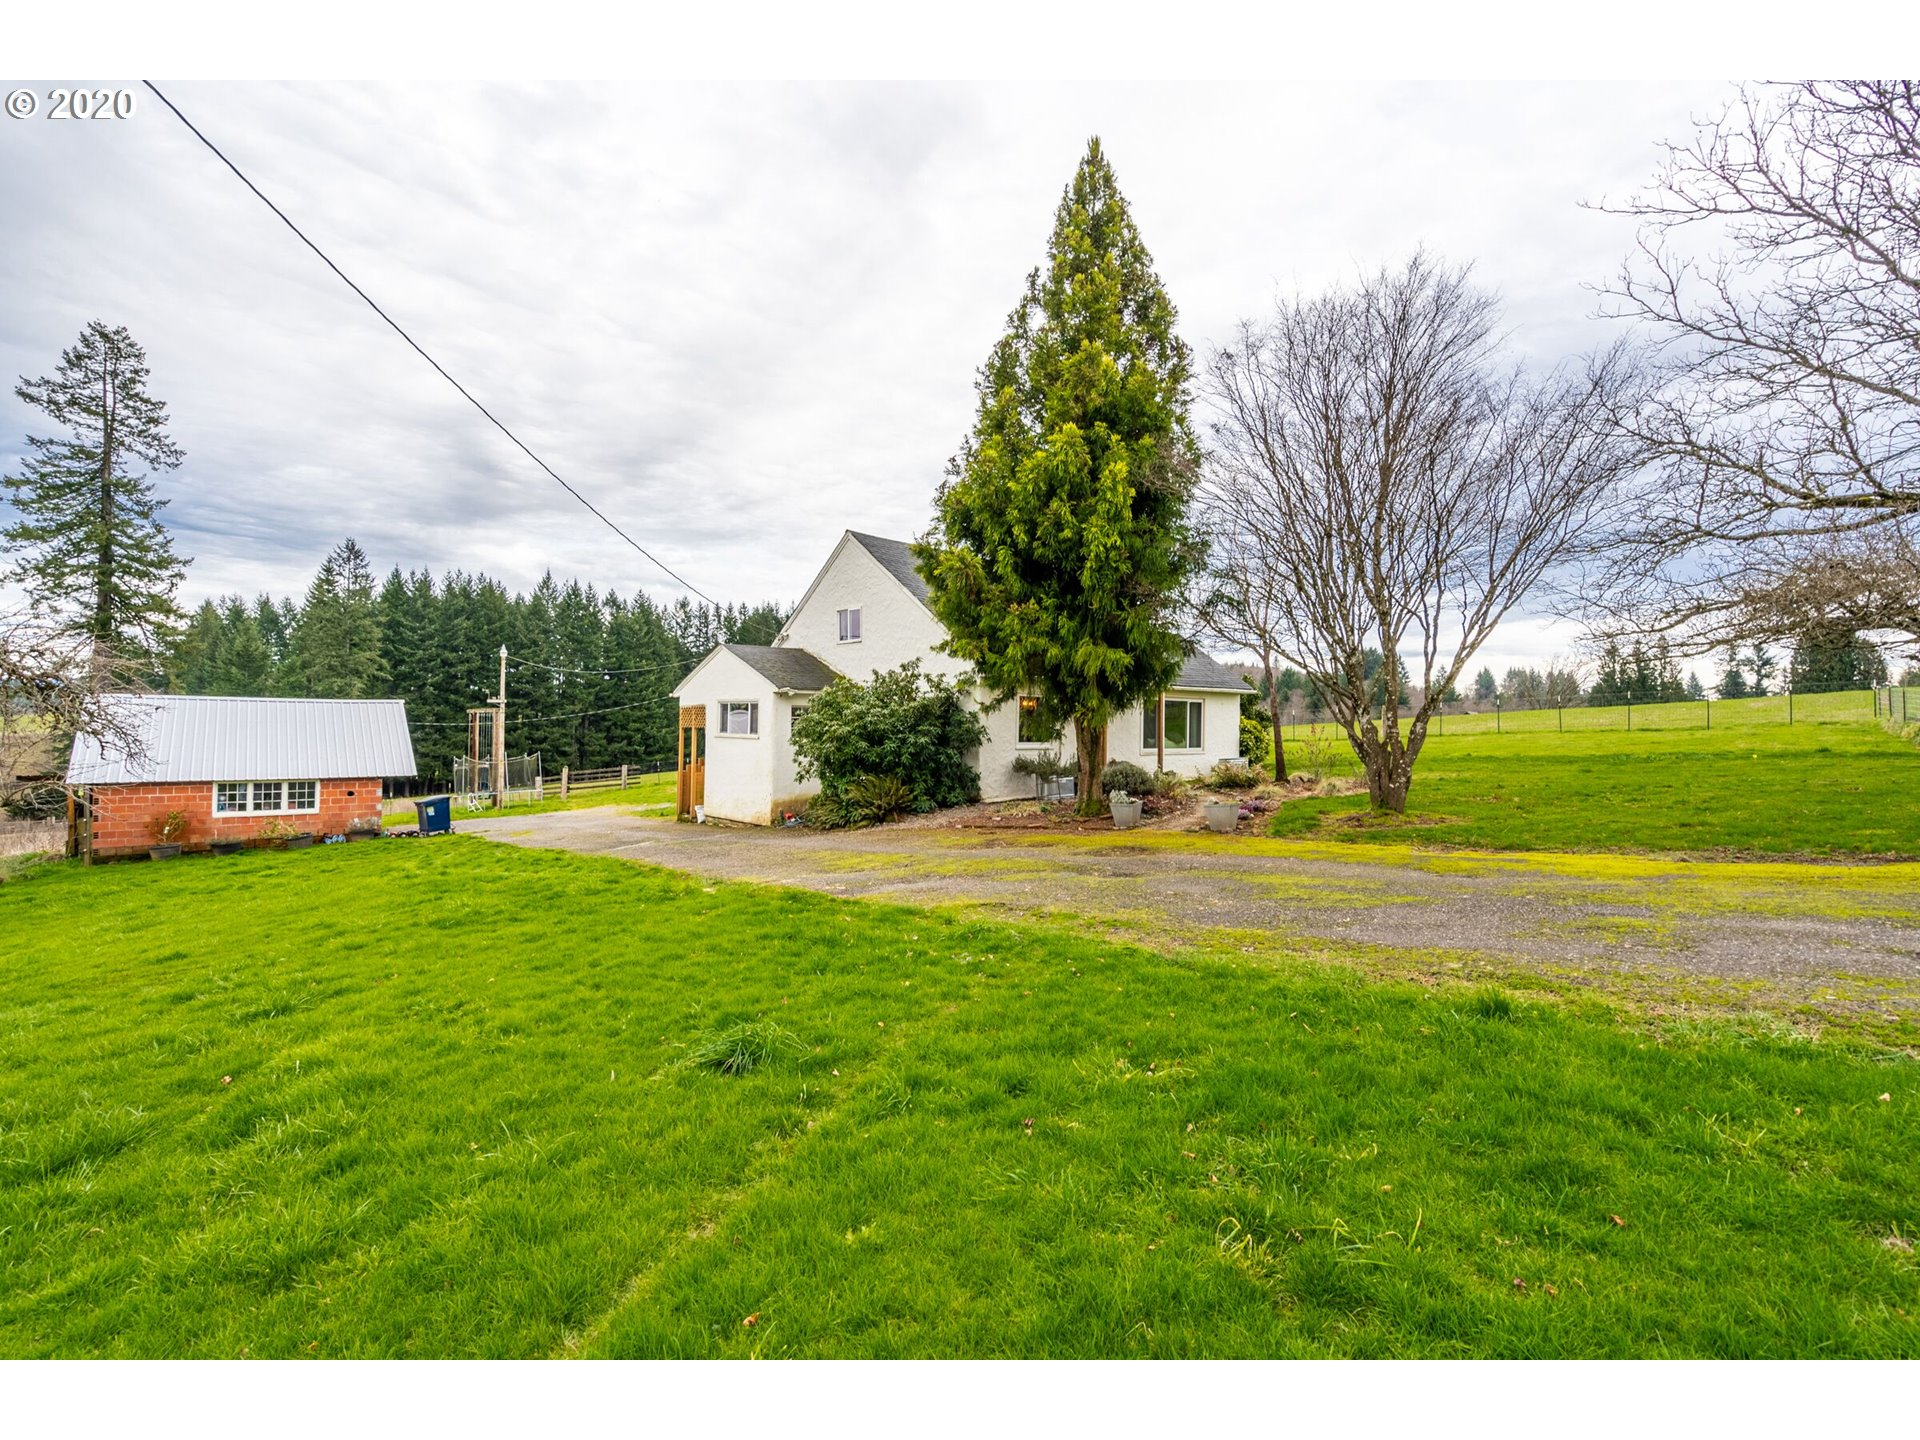 39805 NE 109th Ave, La Center, WA 98629